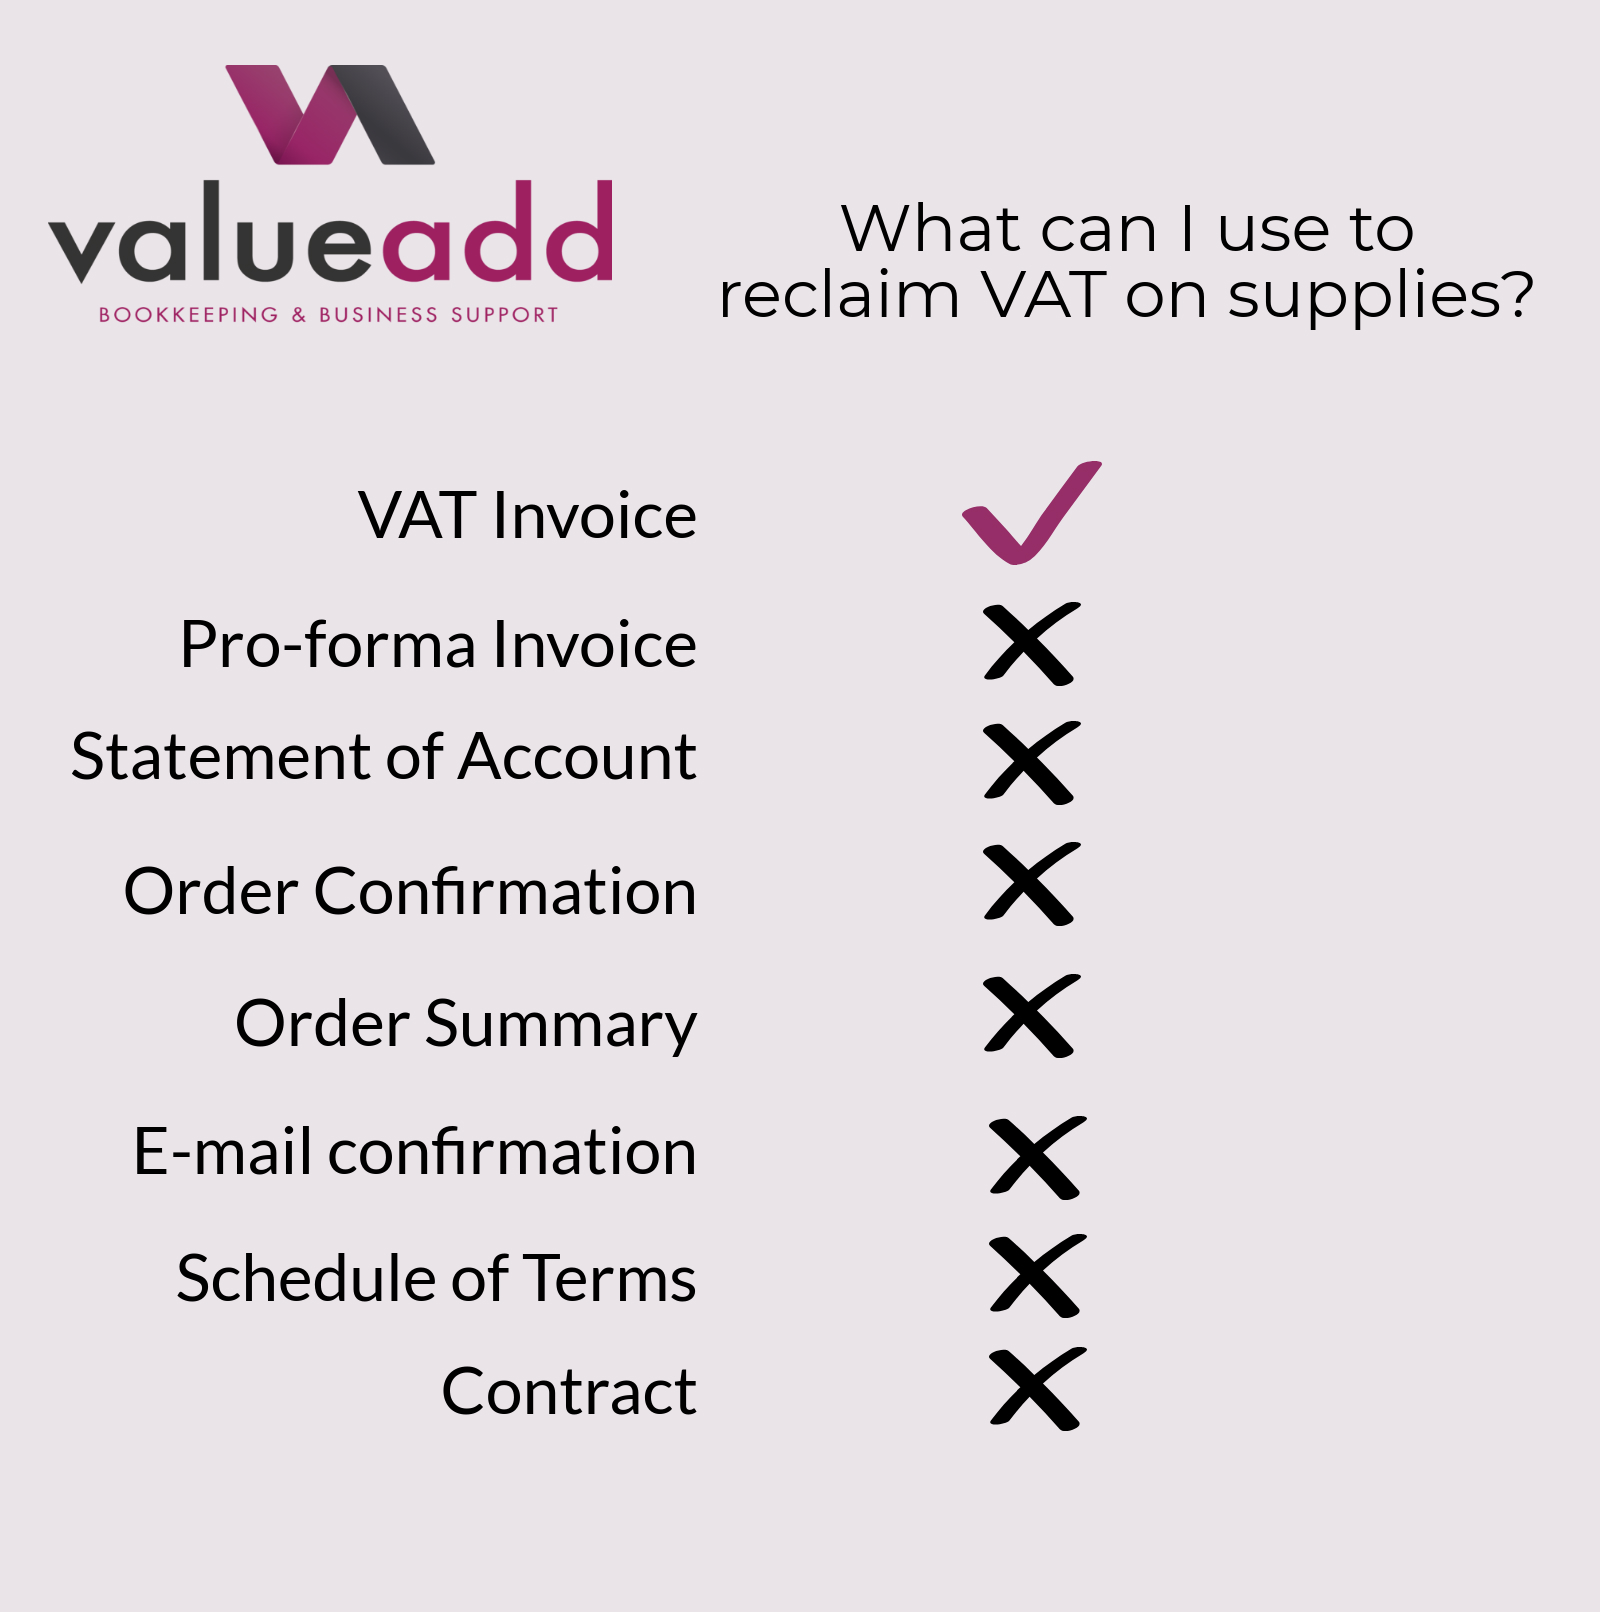 What can I use to reclaim VAT?